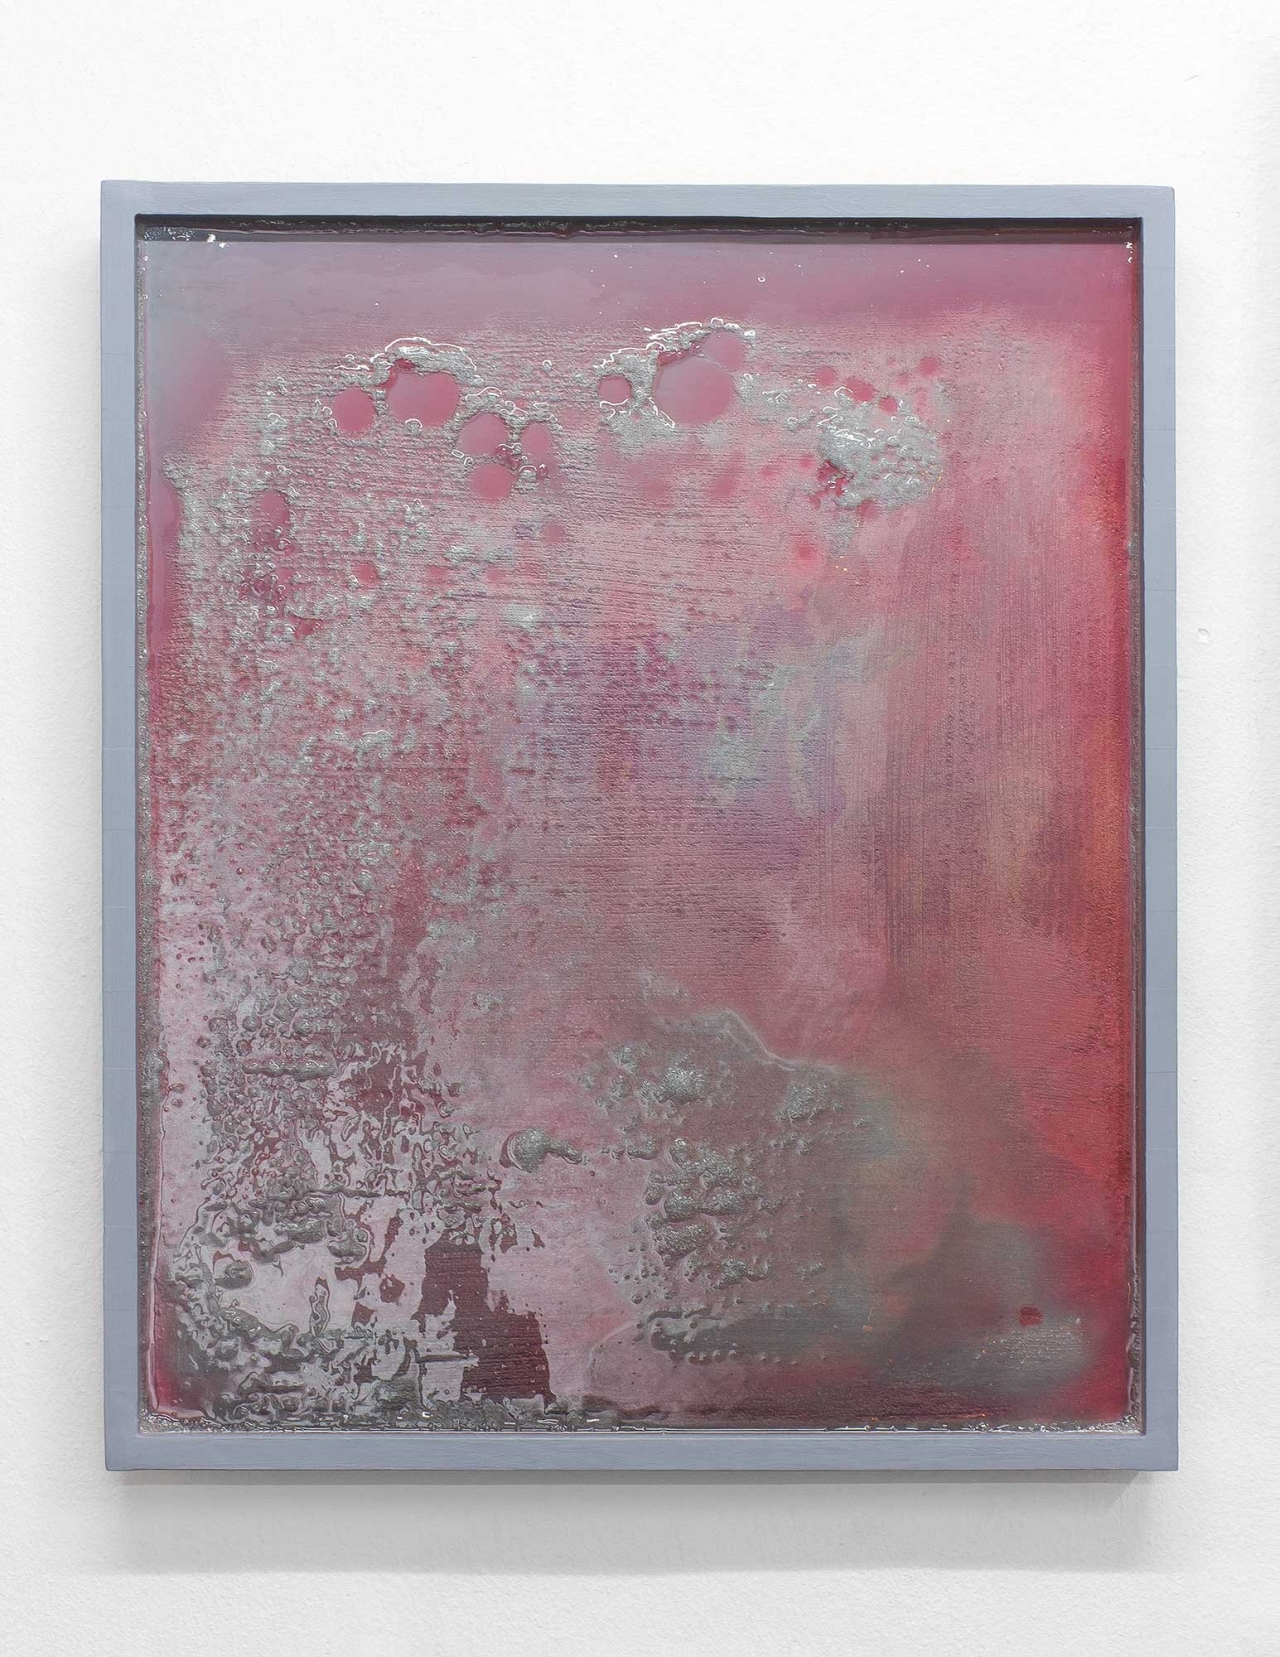 Chris Calmer LÆSKE · SOLO EXHIBITION · BUDDENBROOKS GALLERY · COPENHAGEN